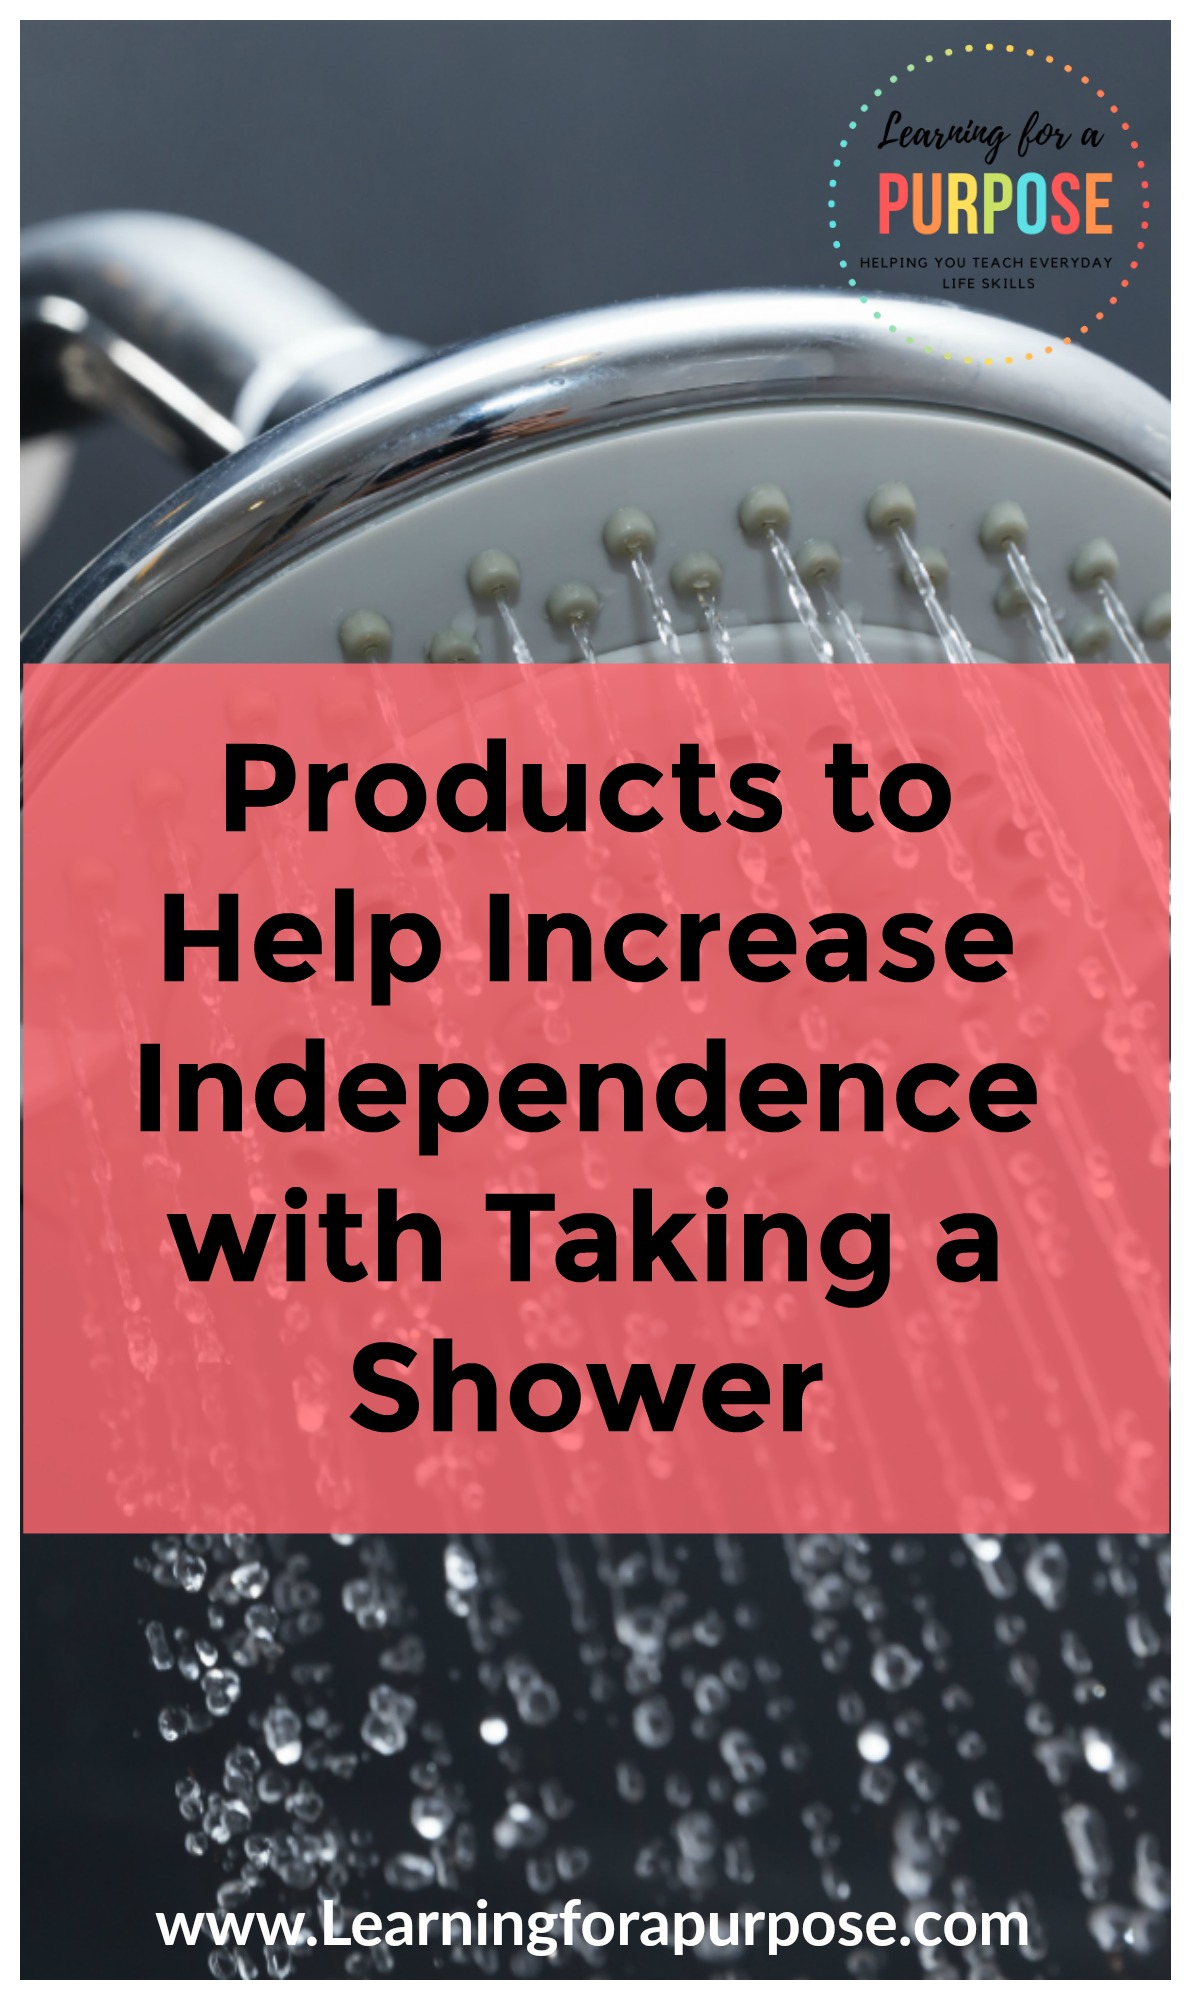 Products to help increase independence with taking a shower